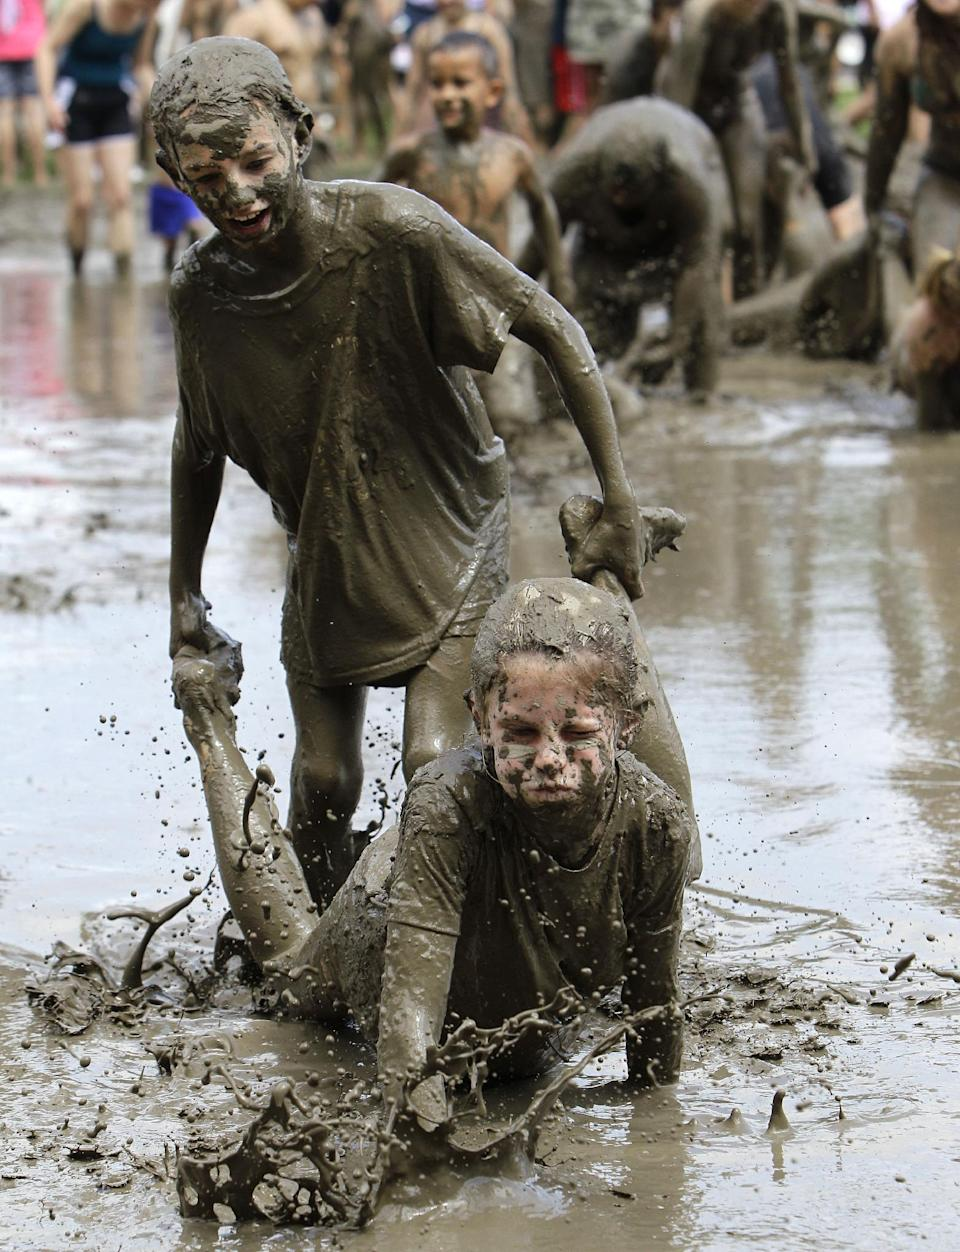 Stephanie Strong, 9, standing, helps Grace Lipscomb, 10, both of Howell, wheel barrow in the mud in Westland, Mich., Tuesday, July 9, 2013. Hundreds of kids enjoyed the annual Mud Day event in a 7-by-150-foot mud pit. (AP Photo/Paul Sancya)